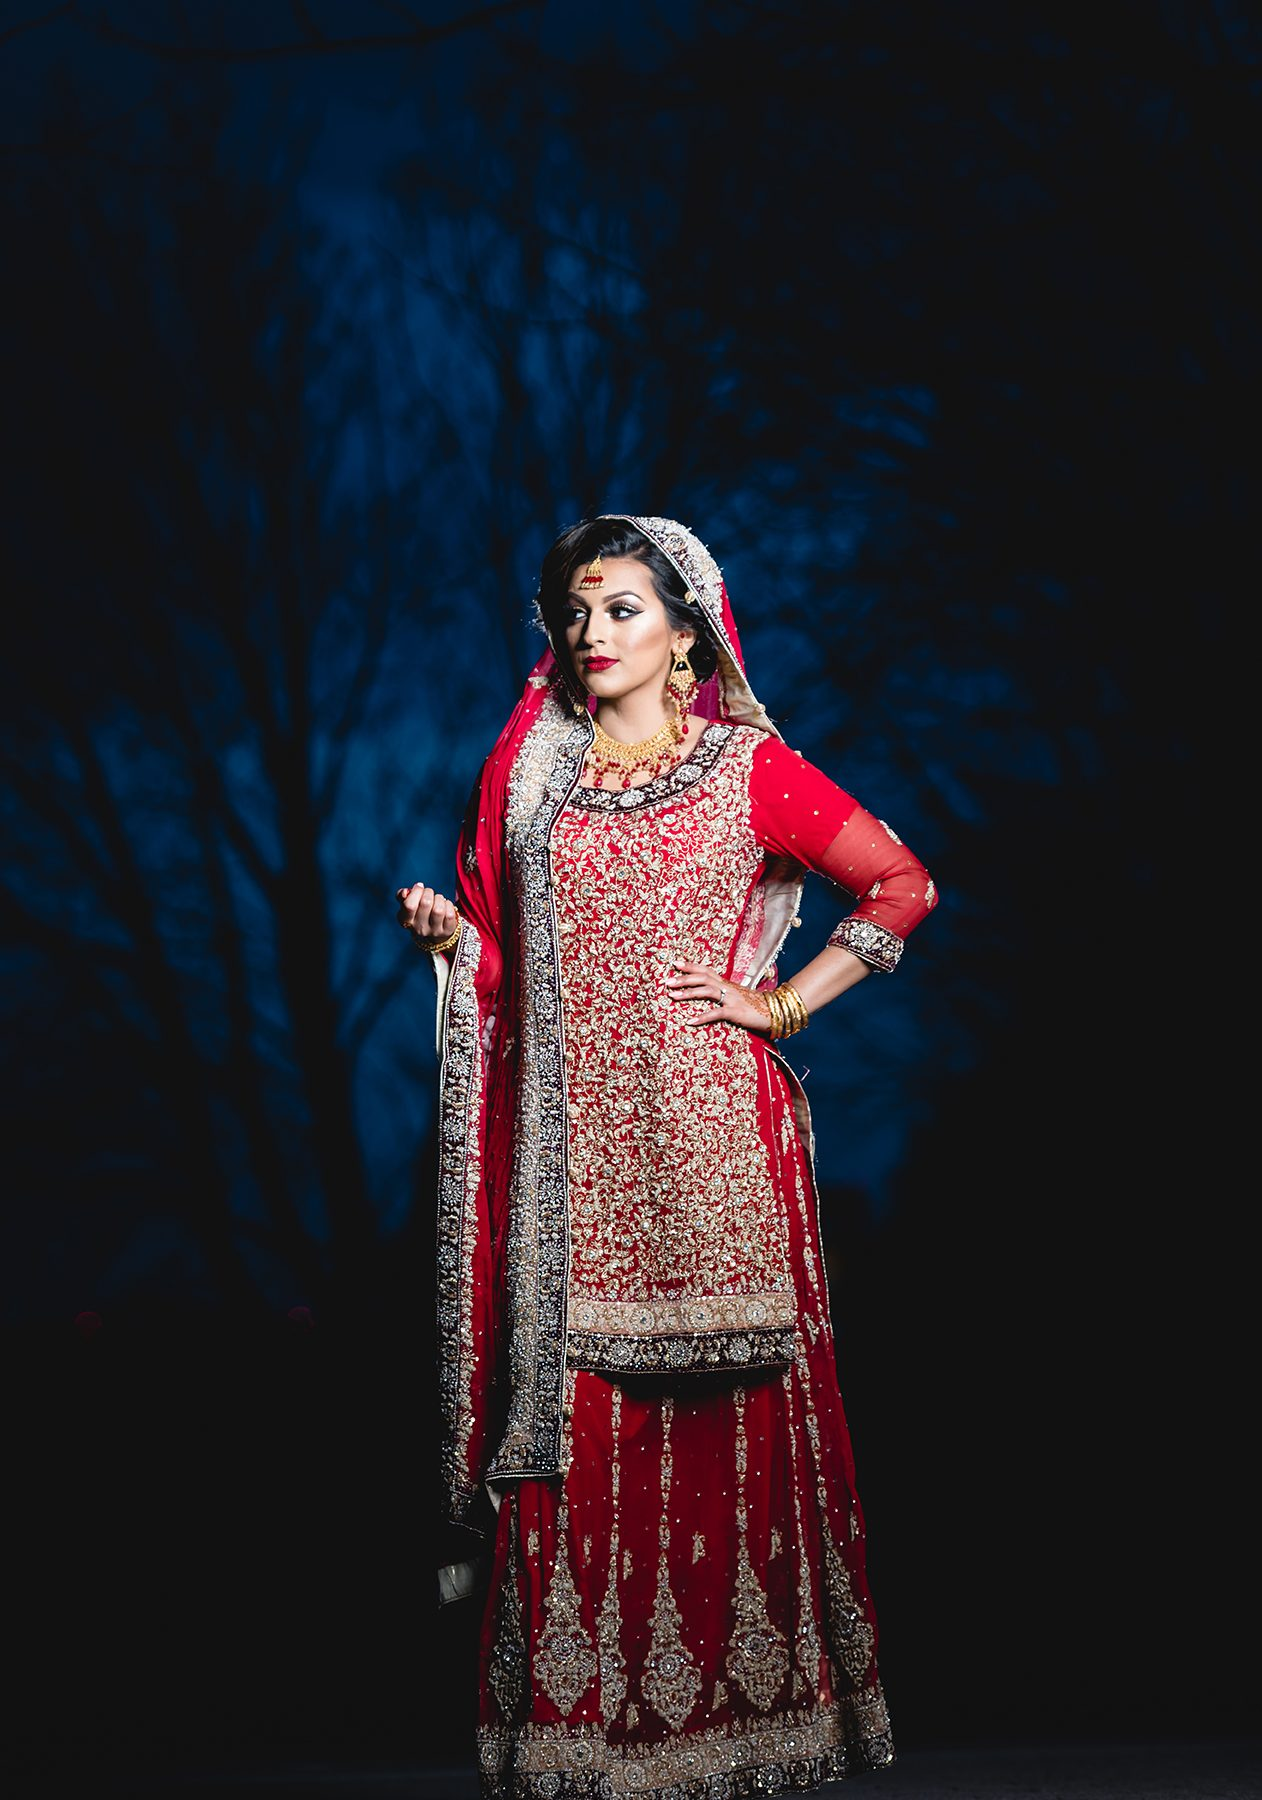 south_asian_wedding_photography_dhoom_studio_new_york77-1262x1800 SOUTH ASIAN WEDDINGS